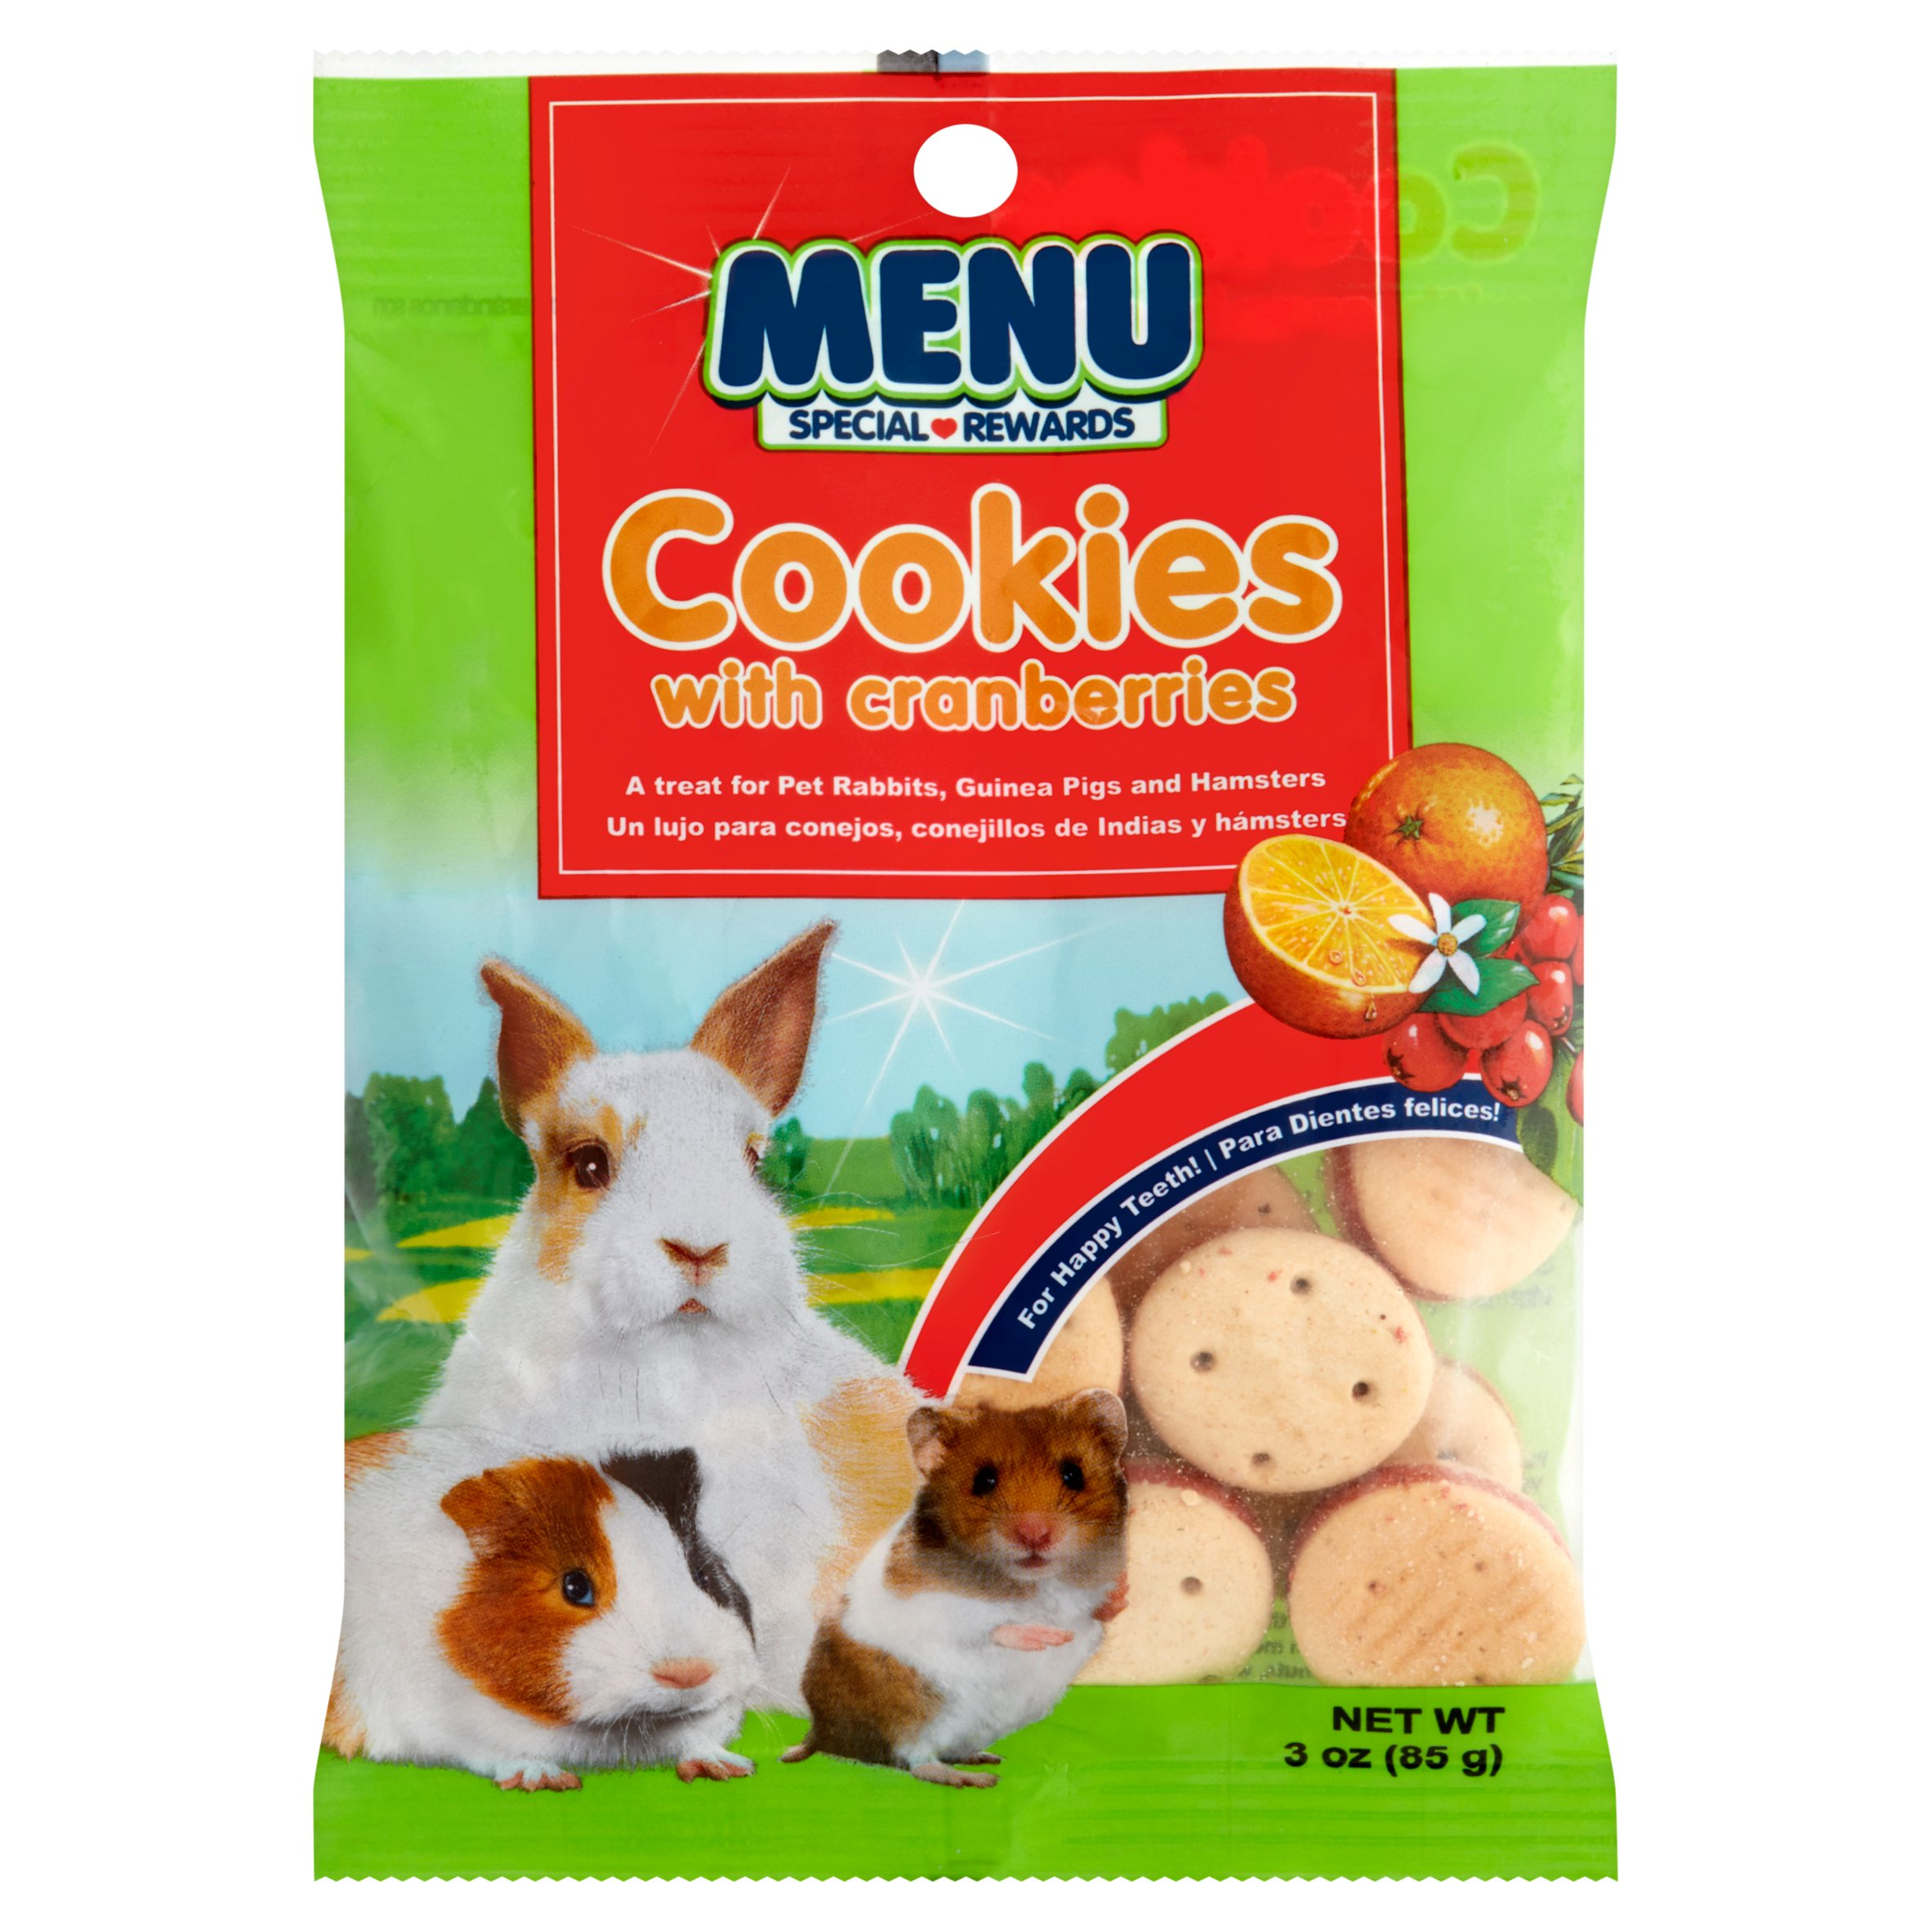 Menu Cookies with Cranberries Rabbit, Guinea Pig, & Hamster Treats, 3 Oz by Vitakraft Sun Seed, Inc.